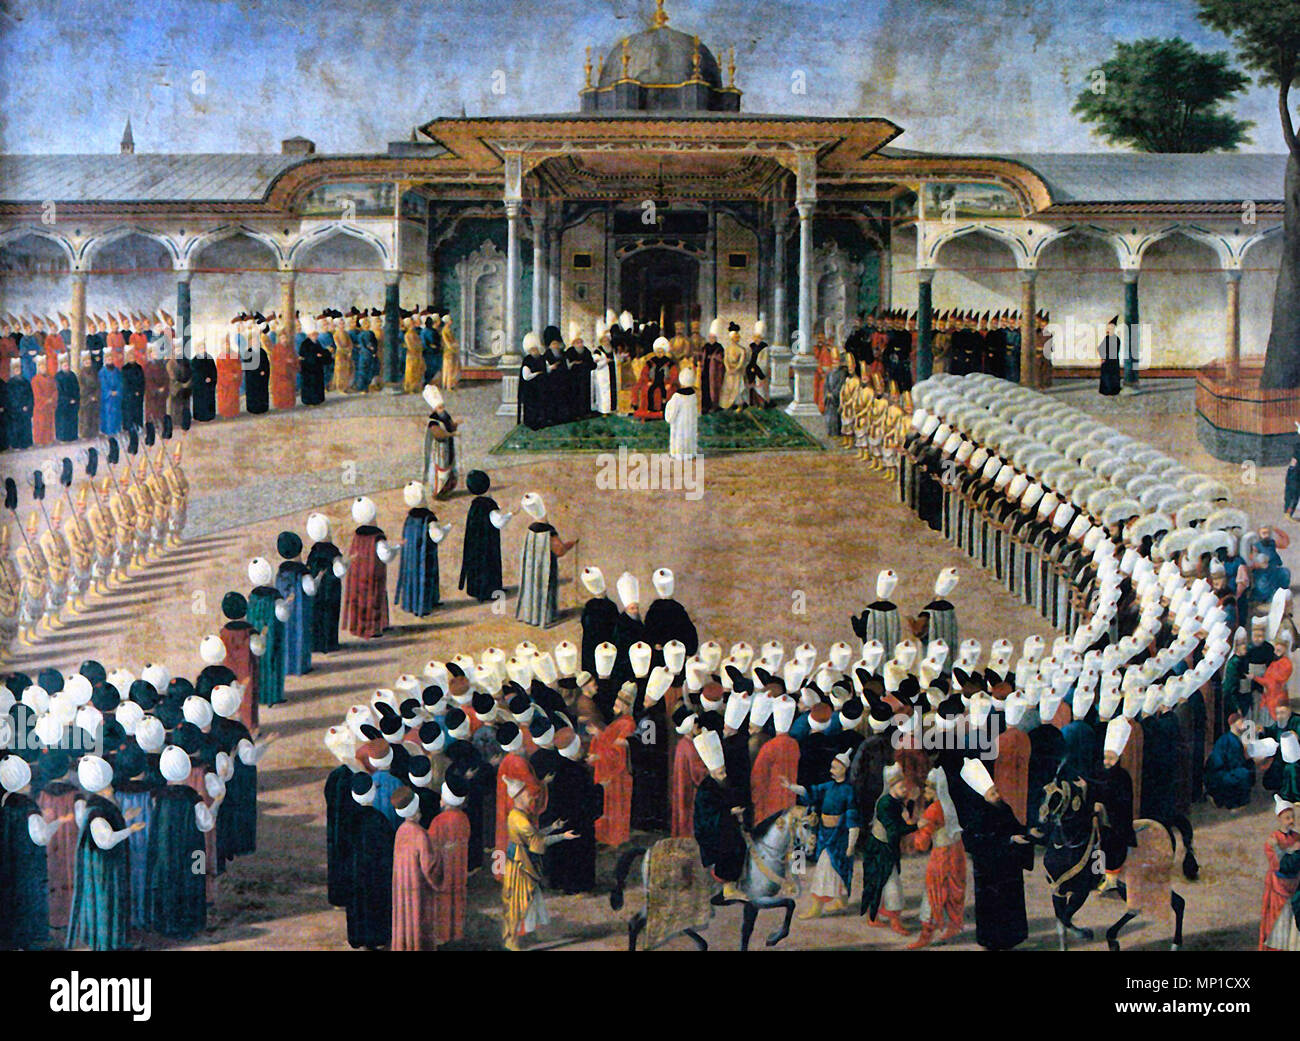 Sultan Selim III holding an audience in front of the Gate of Felicity. Courtiers are assembled in a strict protocol. - Stock Image